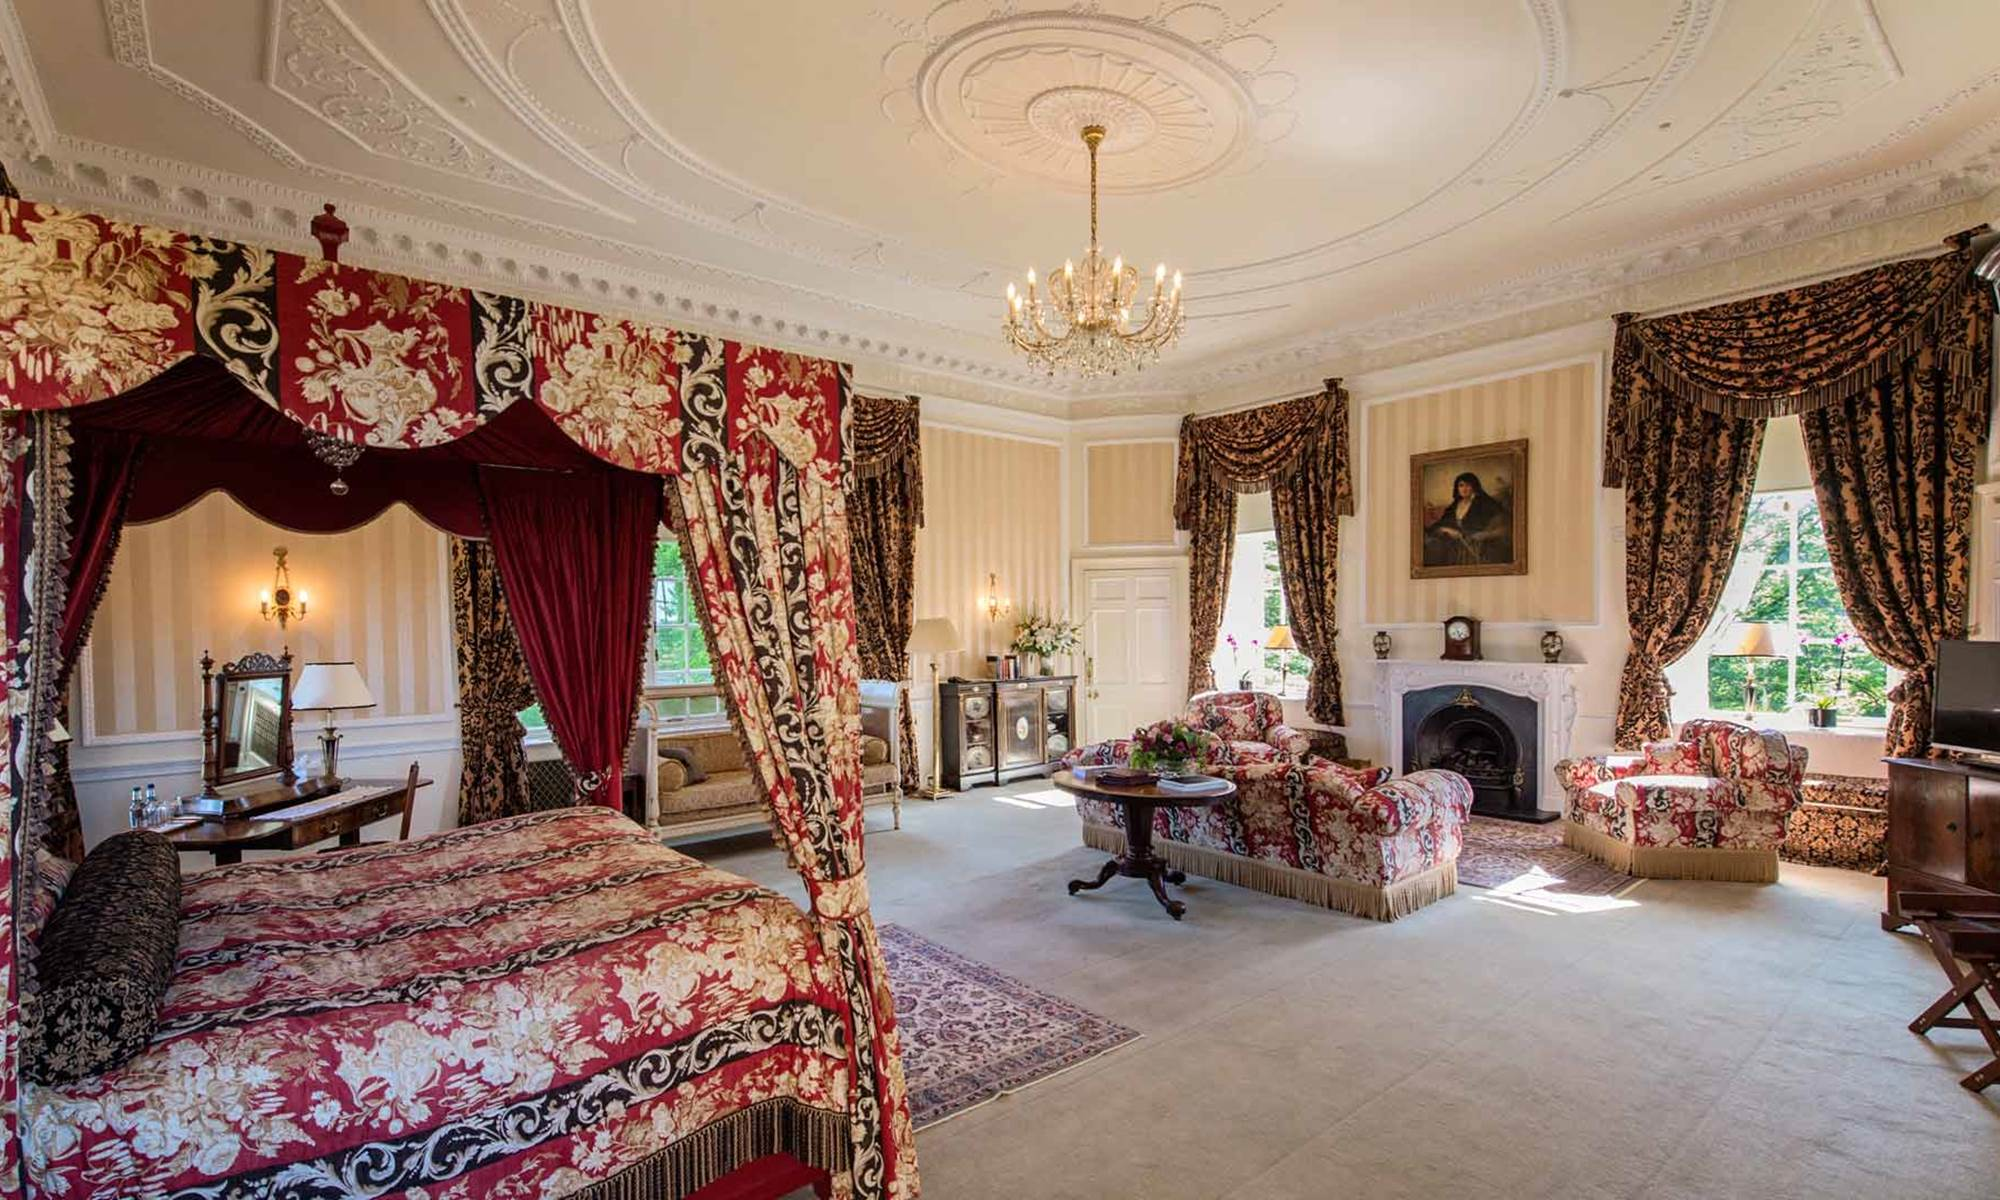 Where Can I Find A Four Poster Bedroom